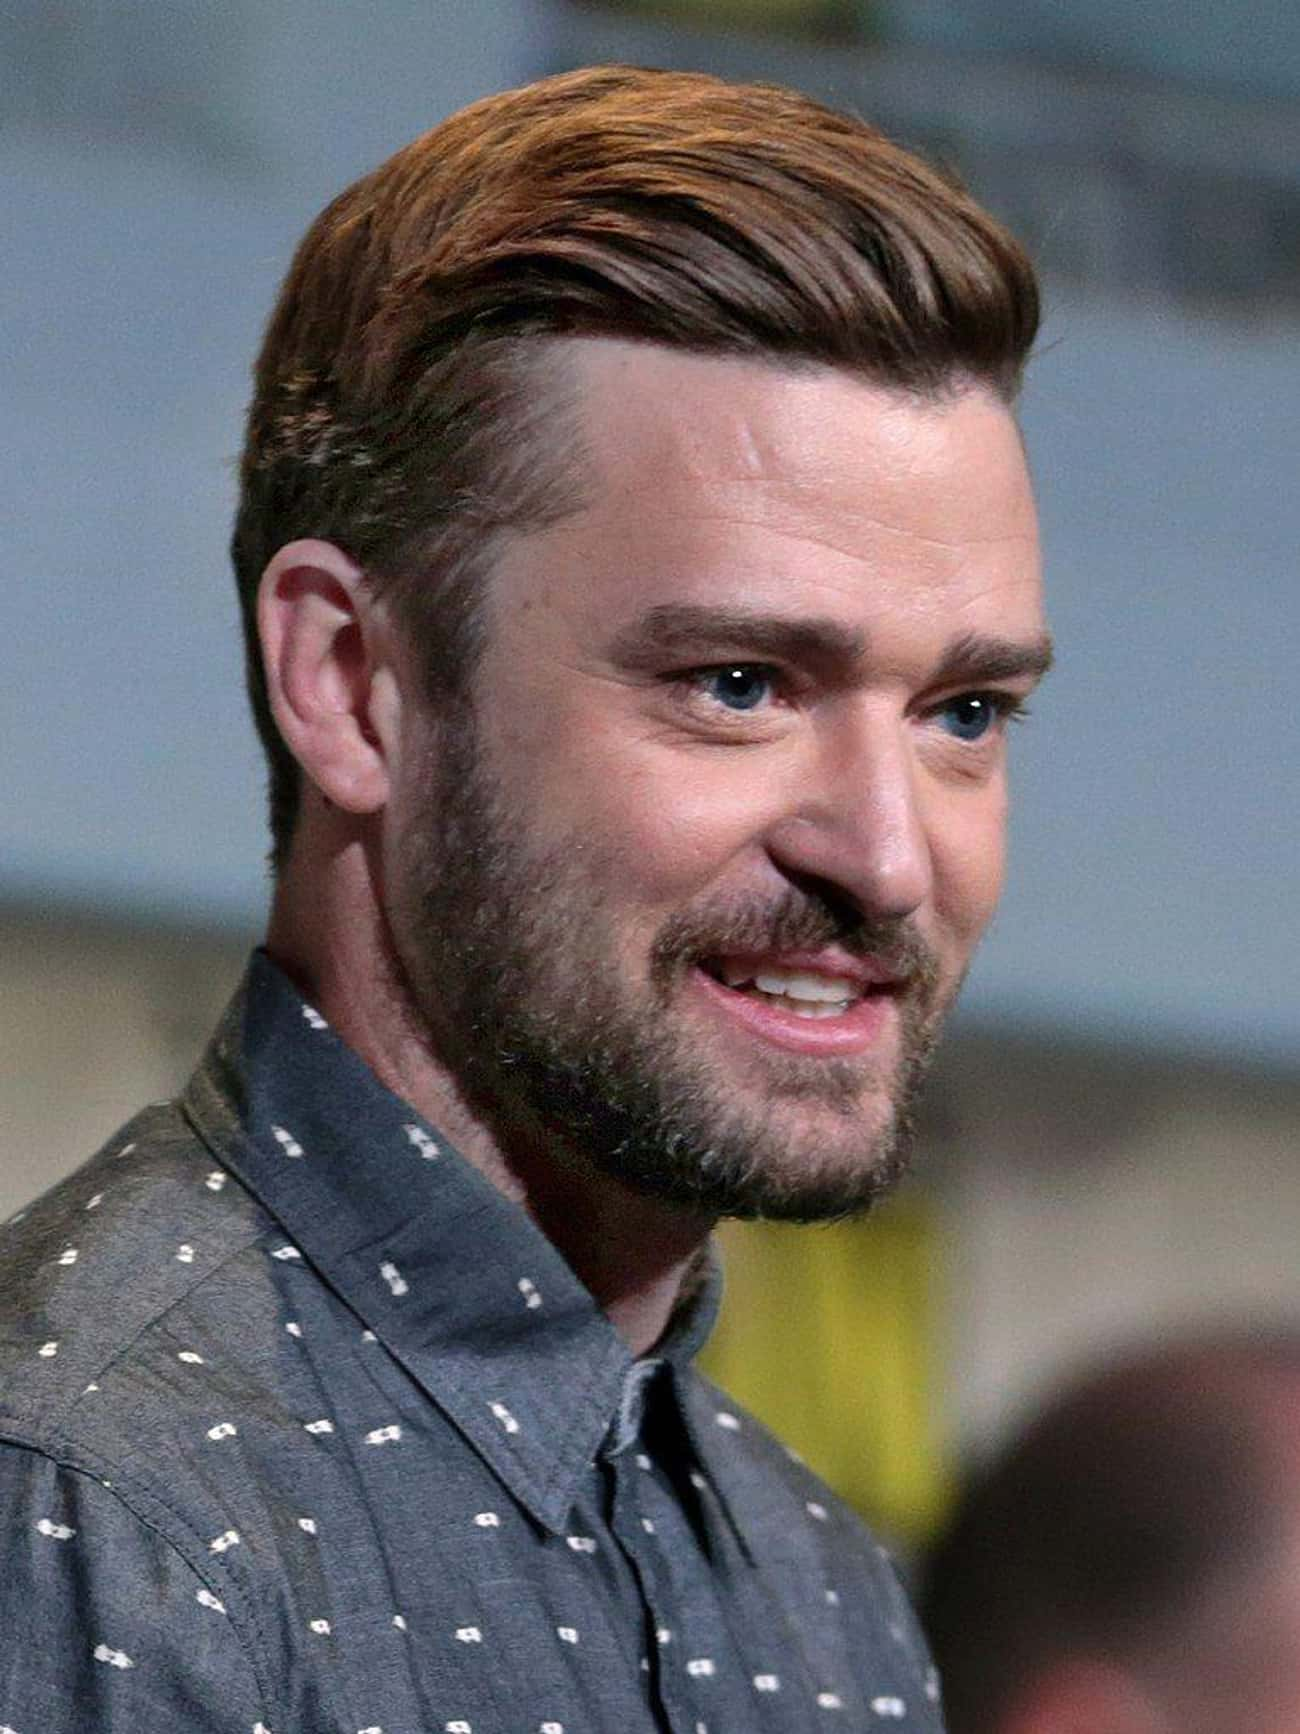 Justin Timberlake - Now is listed (or ranked) 4 on the list The Most Popular Teen Idol Guys of All Time (Then and Now)